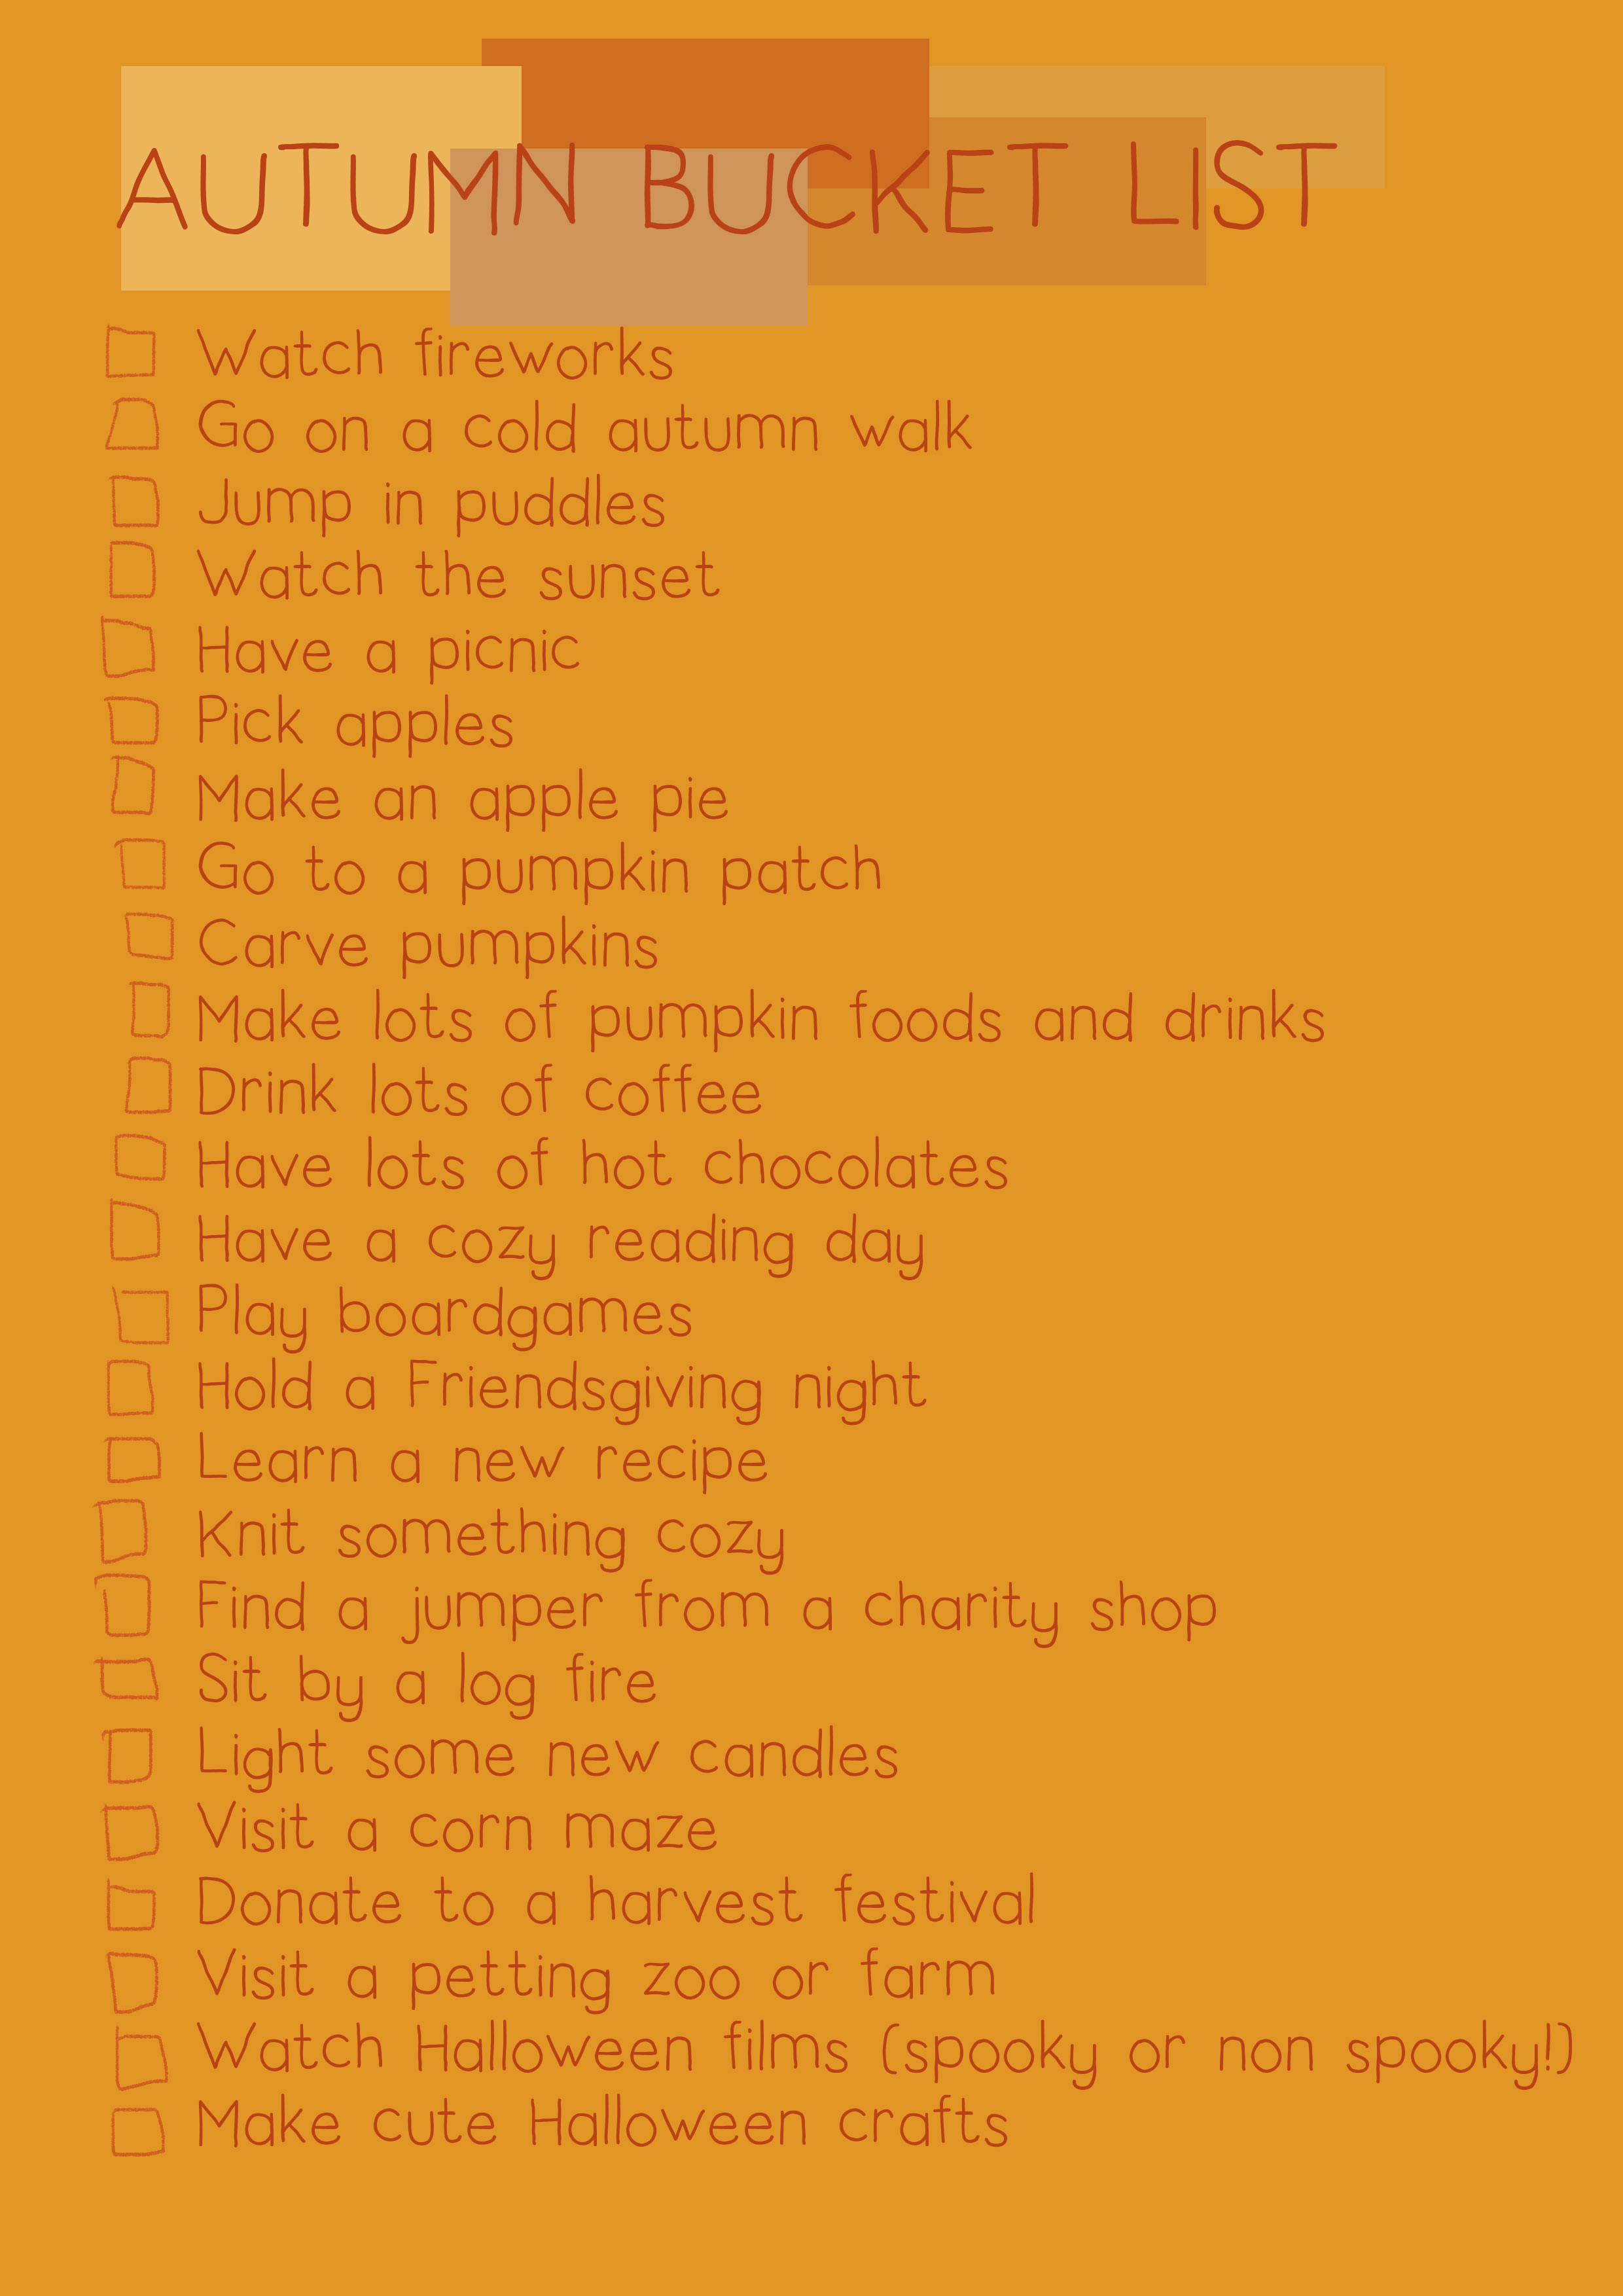 Autumnbucketlist